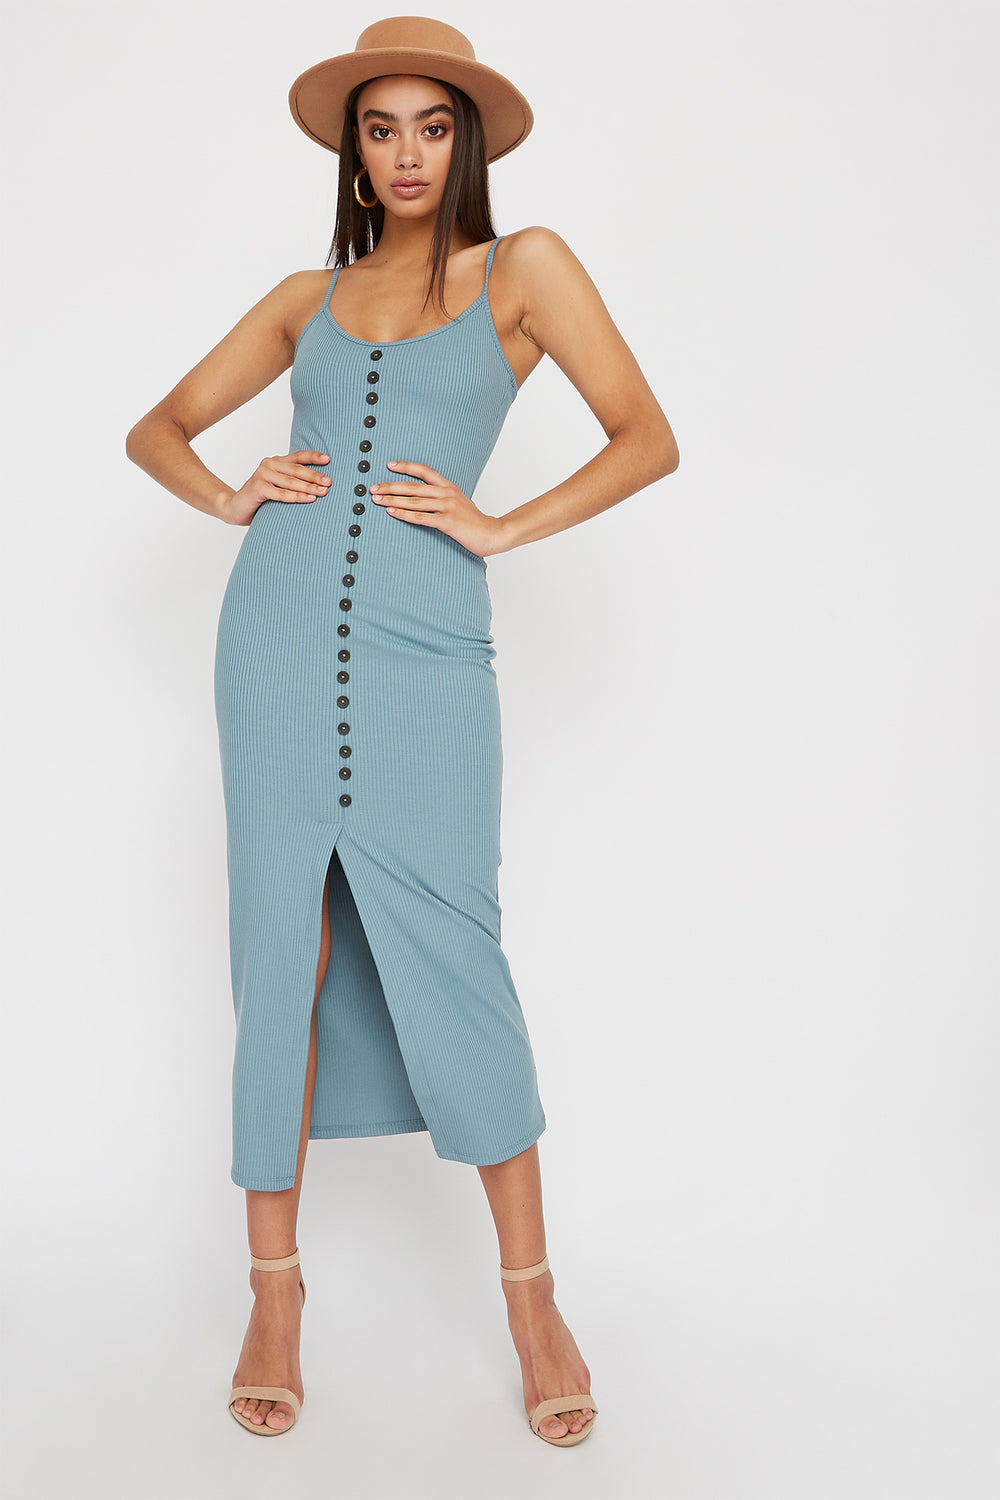 Ribbed Button Cut Out Sleeveless Midi Dress Light Blue